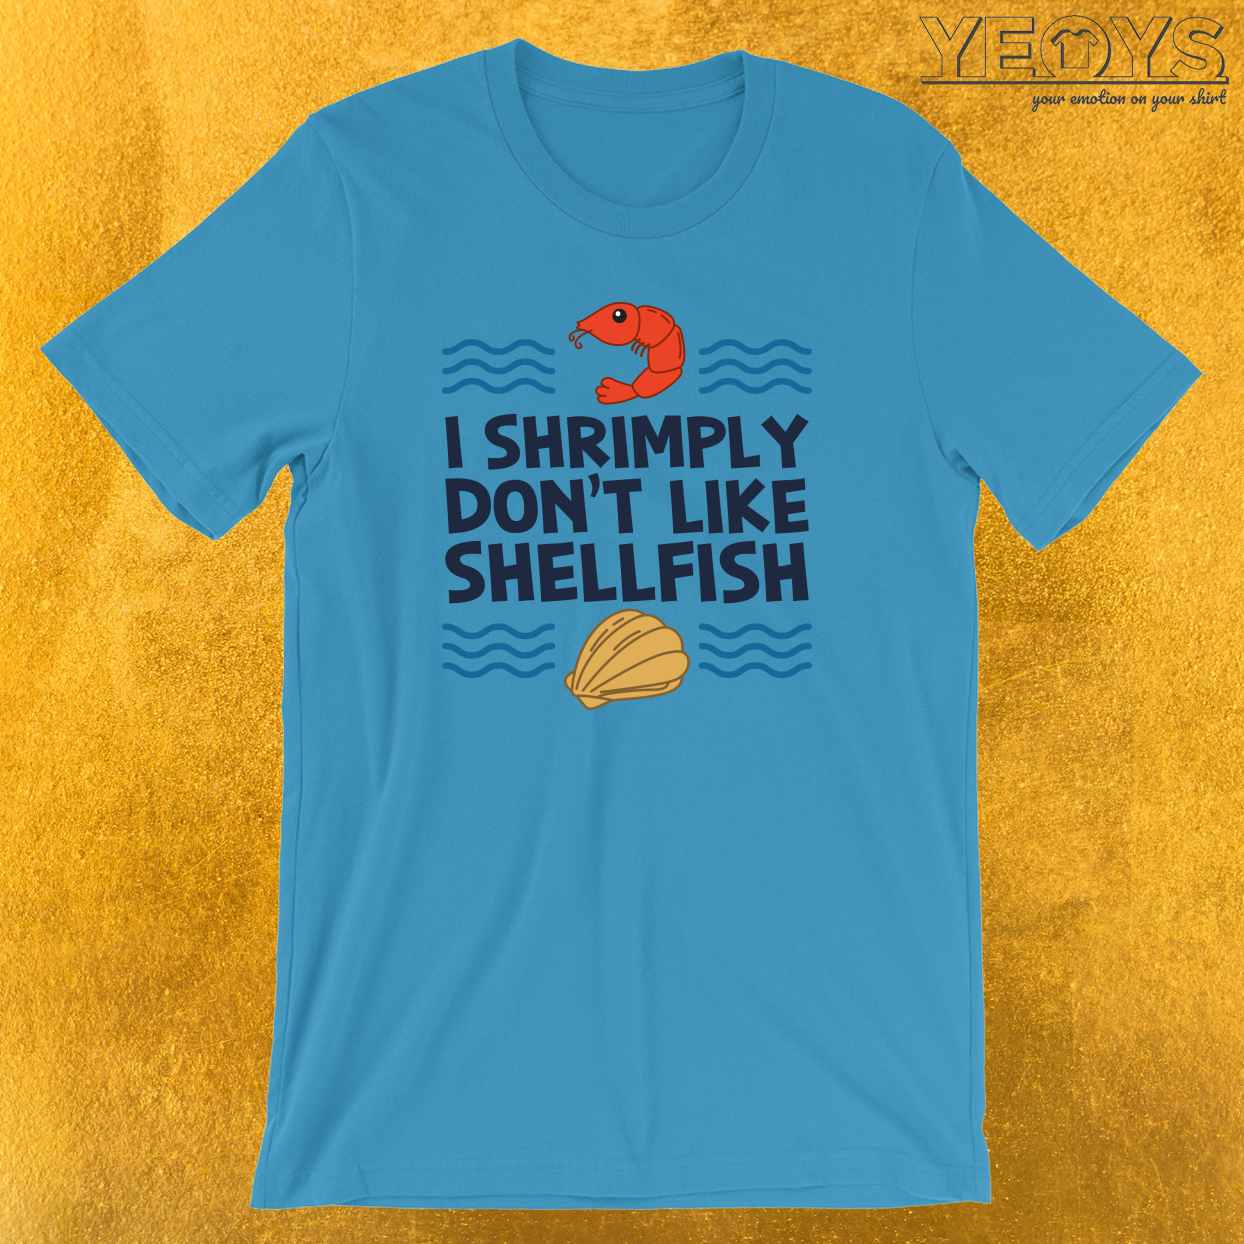 I Shrimply Don't Like Shellfish T-Shirt